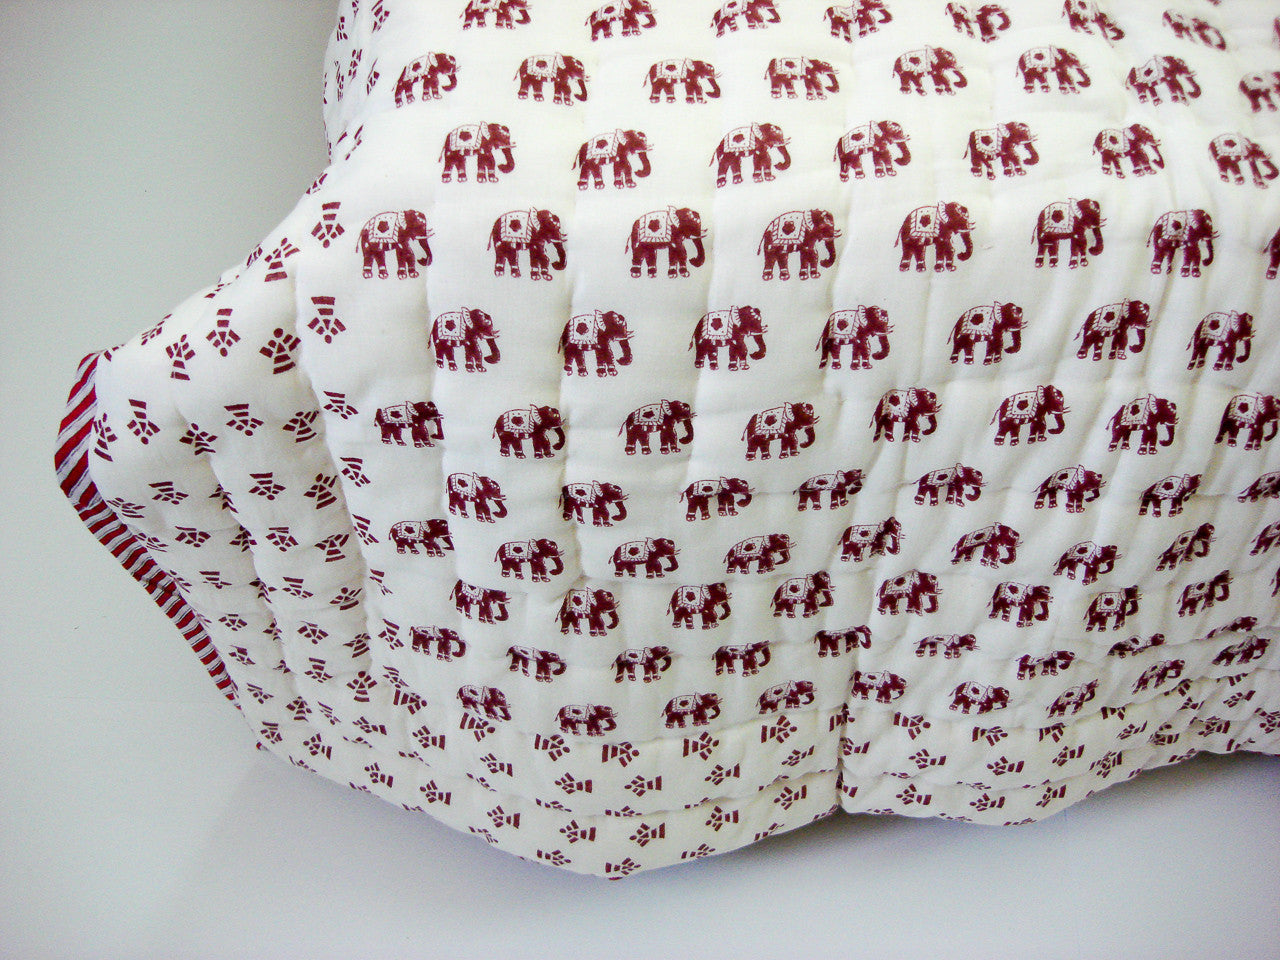 100% Handmade Cotton Queen Quilt - Elephant Prints - Pentagon Crafts